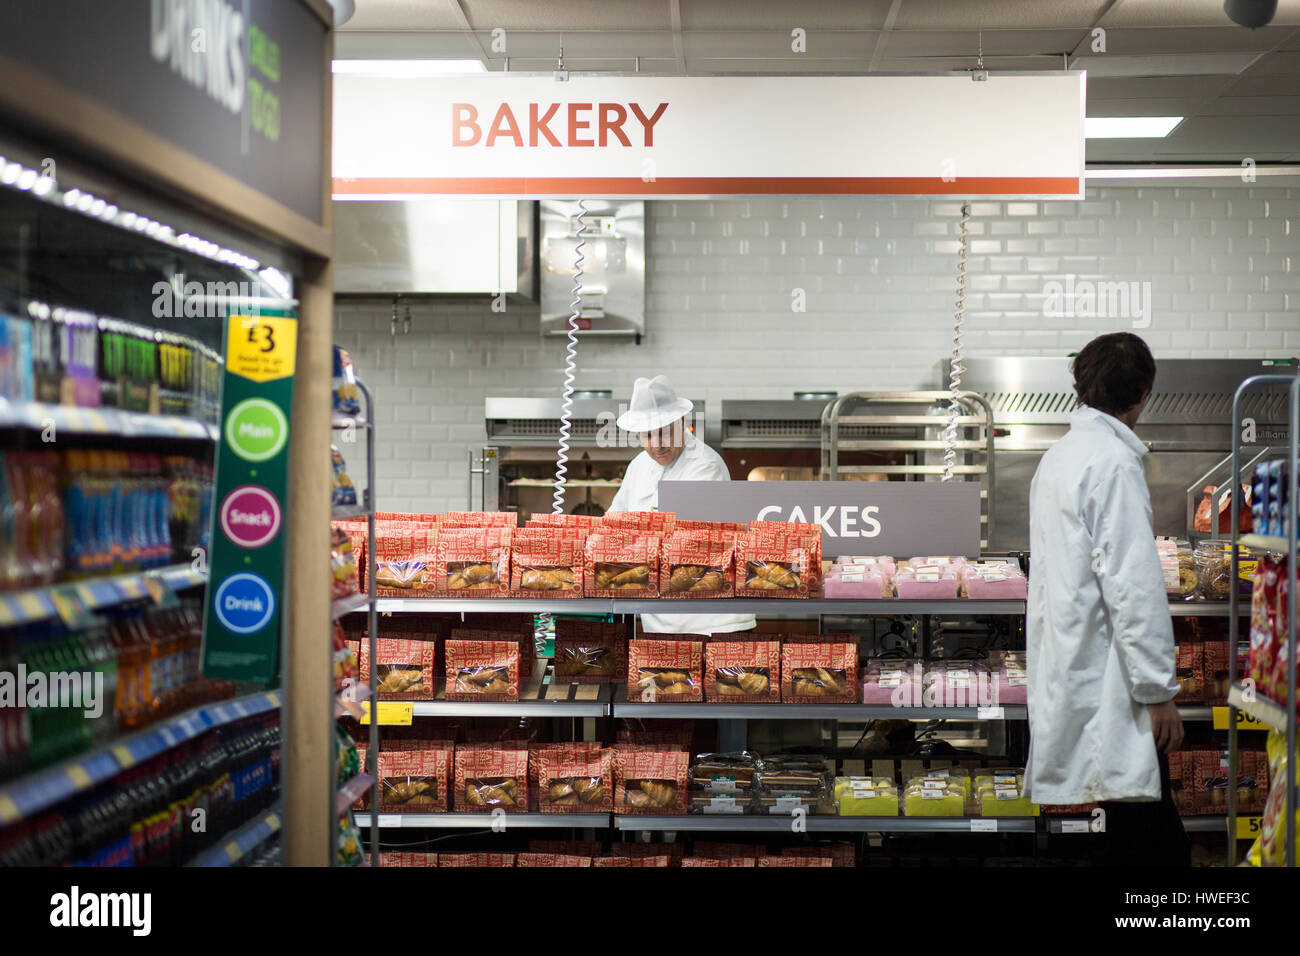 Morrisons supermarket - Grafton St, Oxford Rd, Manchester M13 9NU. Bakery inside the store - Stock Image